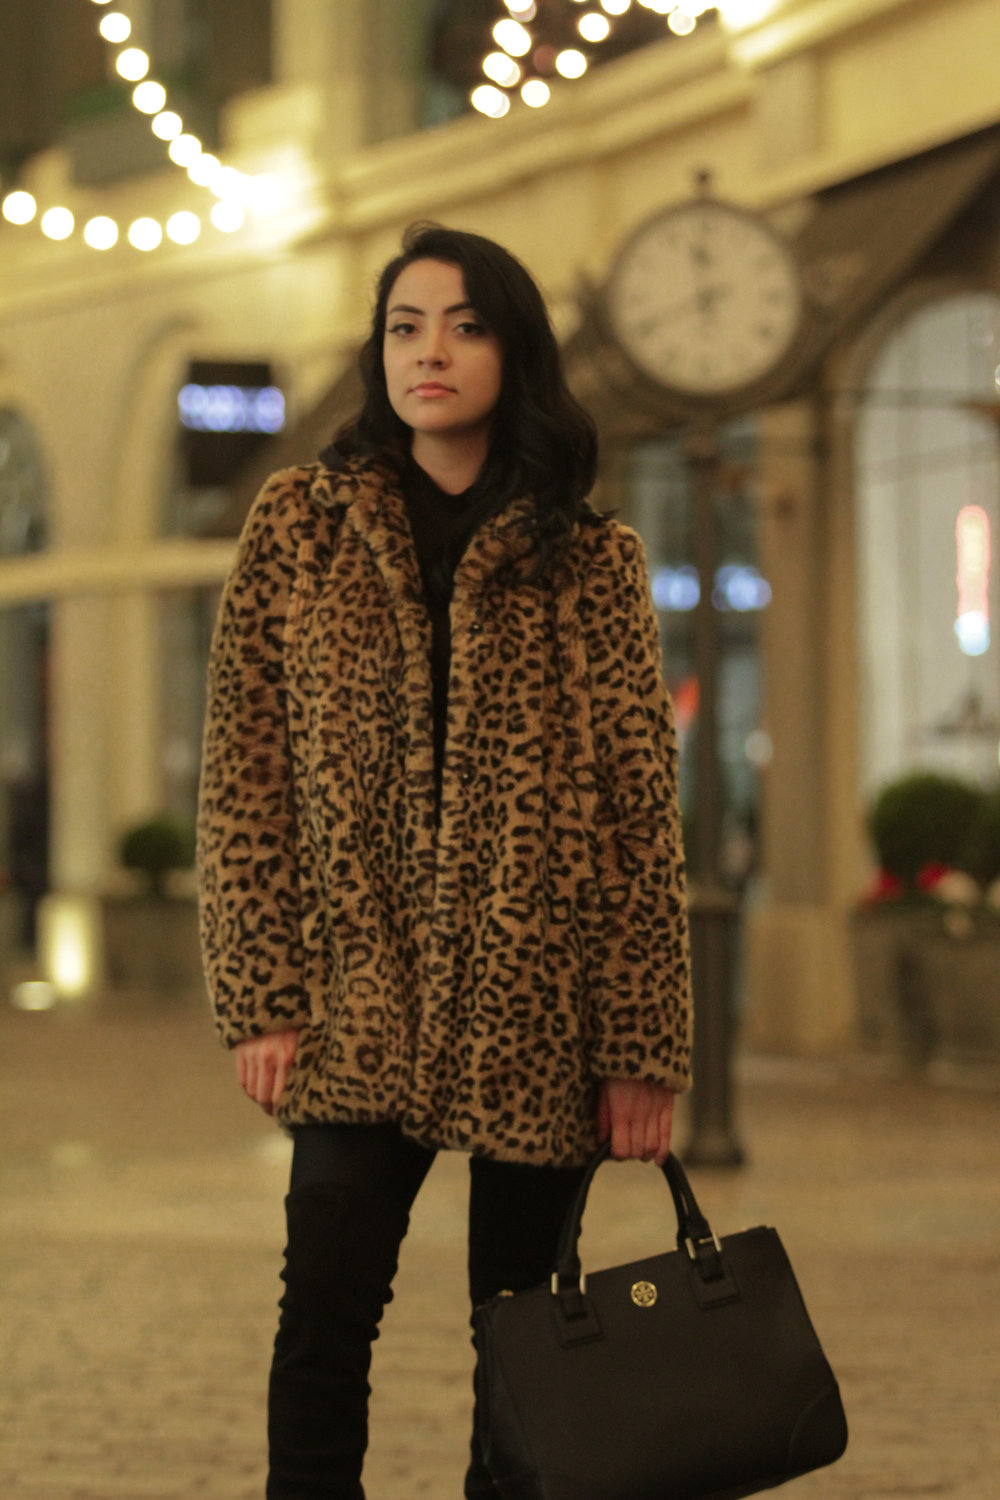 Leopard print is one of those timeless patterns that really can make an outfit pop. Although, it's important to make this print an accent piece with muted colors to avoid having an overly busy outfit.